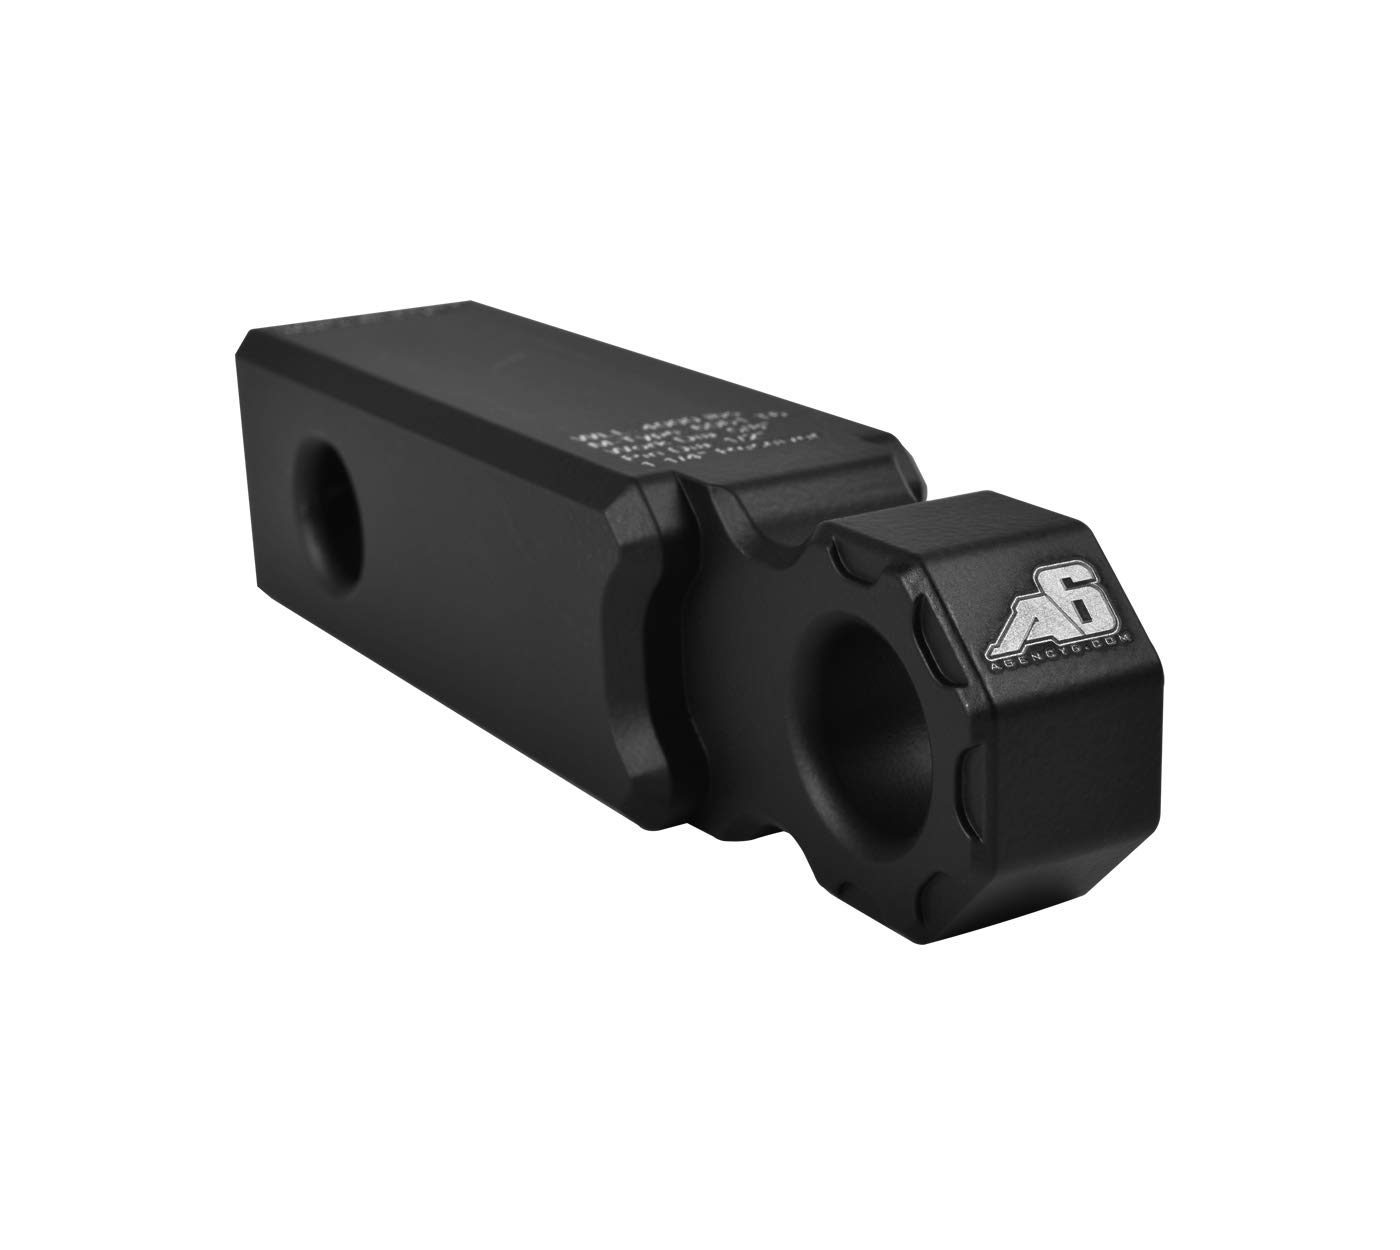 Agency 6 Recovery Shackle Block 1.25' Black Powder Coat - Hitch Receiver Fits 1.25 inch Hitch receivers HitchLink Recovery Tow Block - Proudly Made in The USA with US Certified Materials Agency 6 Inc